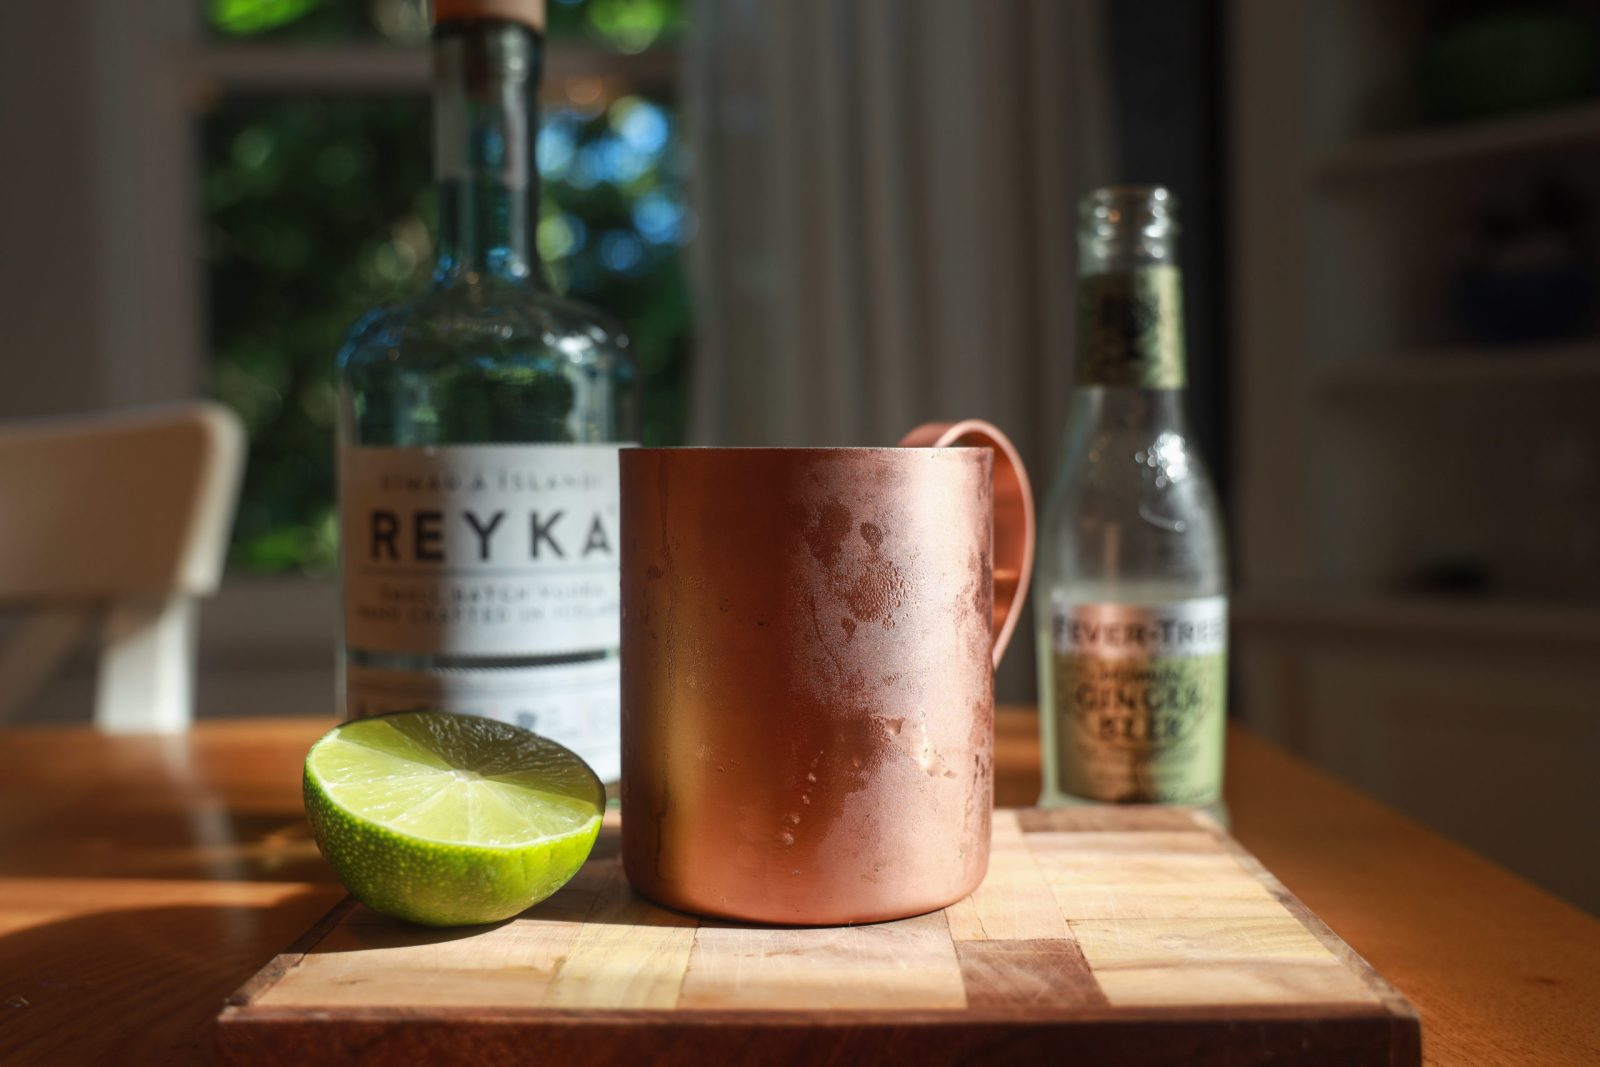 Moscow Mule cocktail in a copper mug with Reyka vodka and Fever Tree ginger beer.